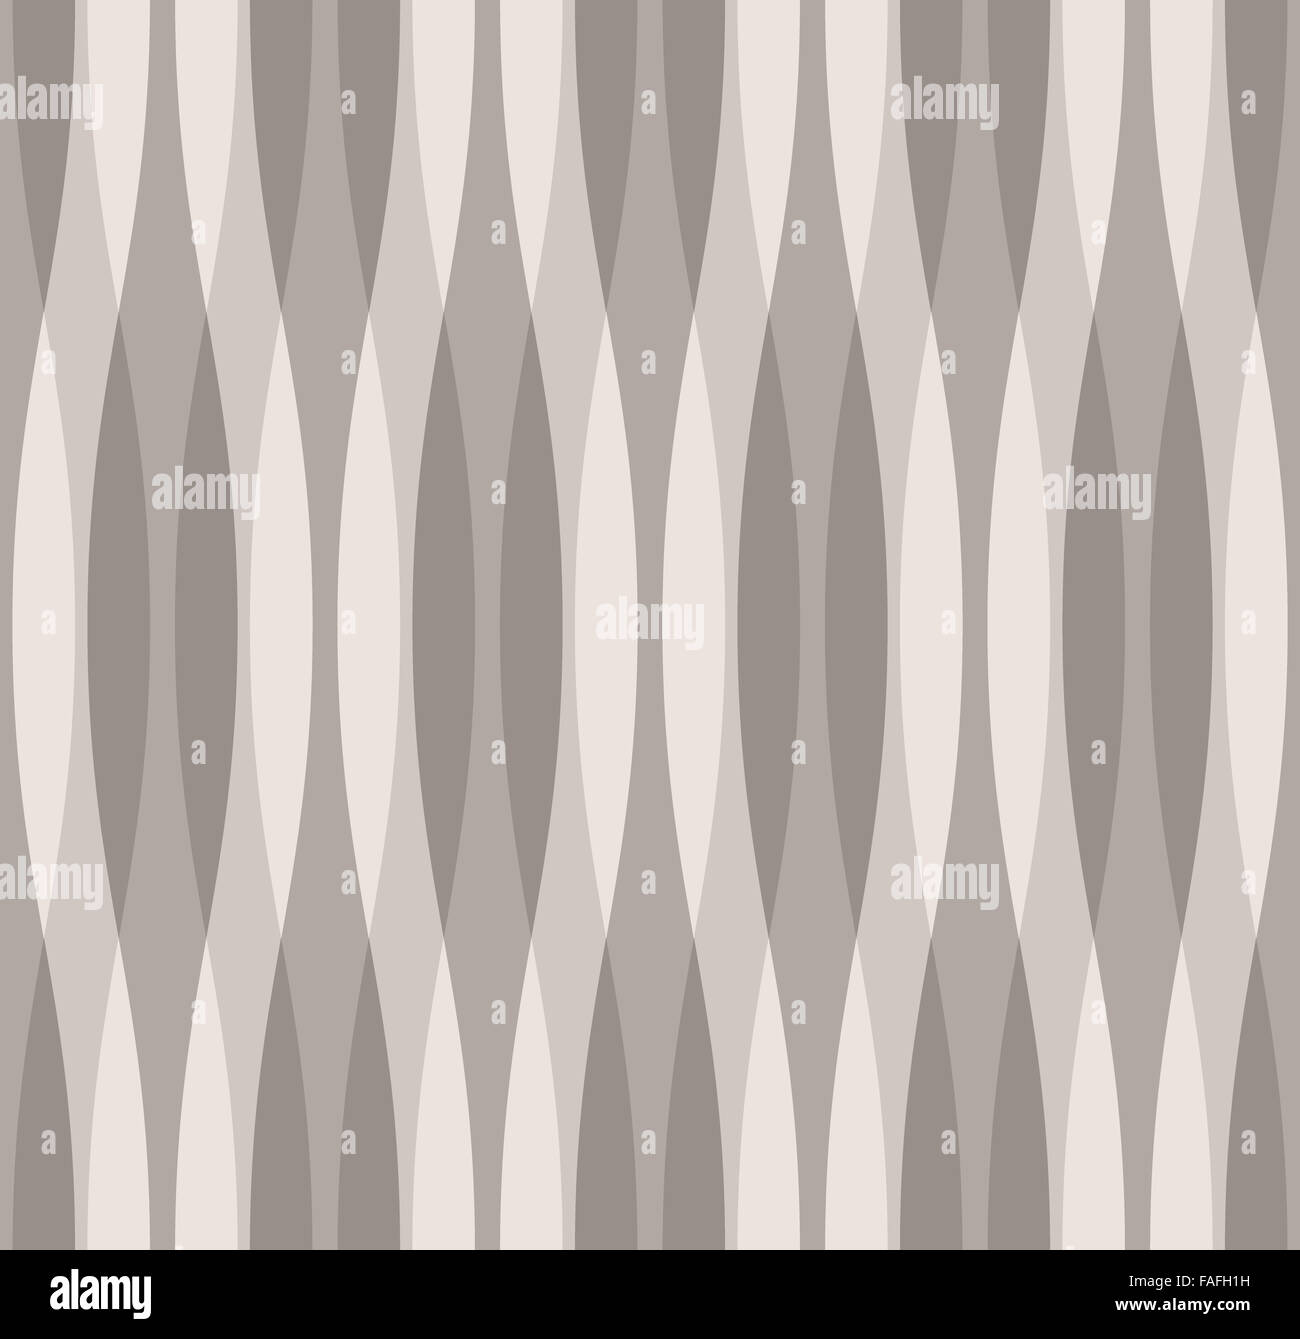 Shades of Gray Abstract Wavy Background - Stock Image